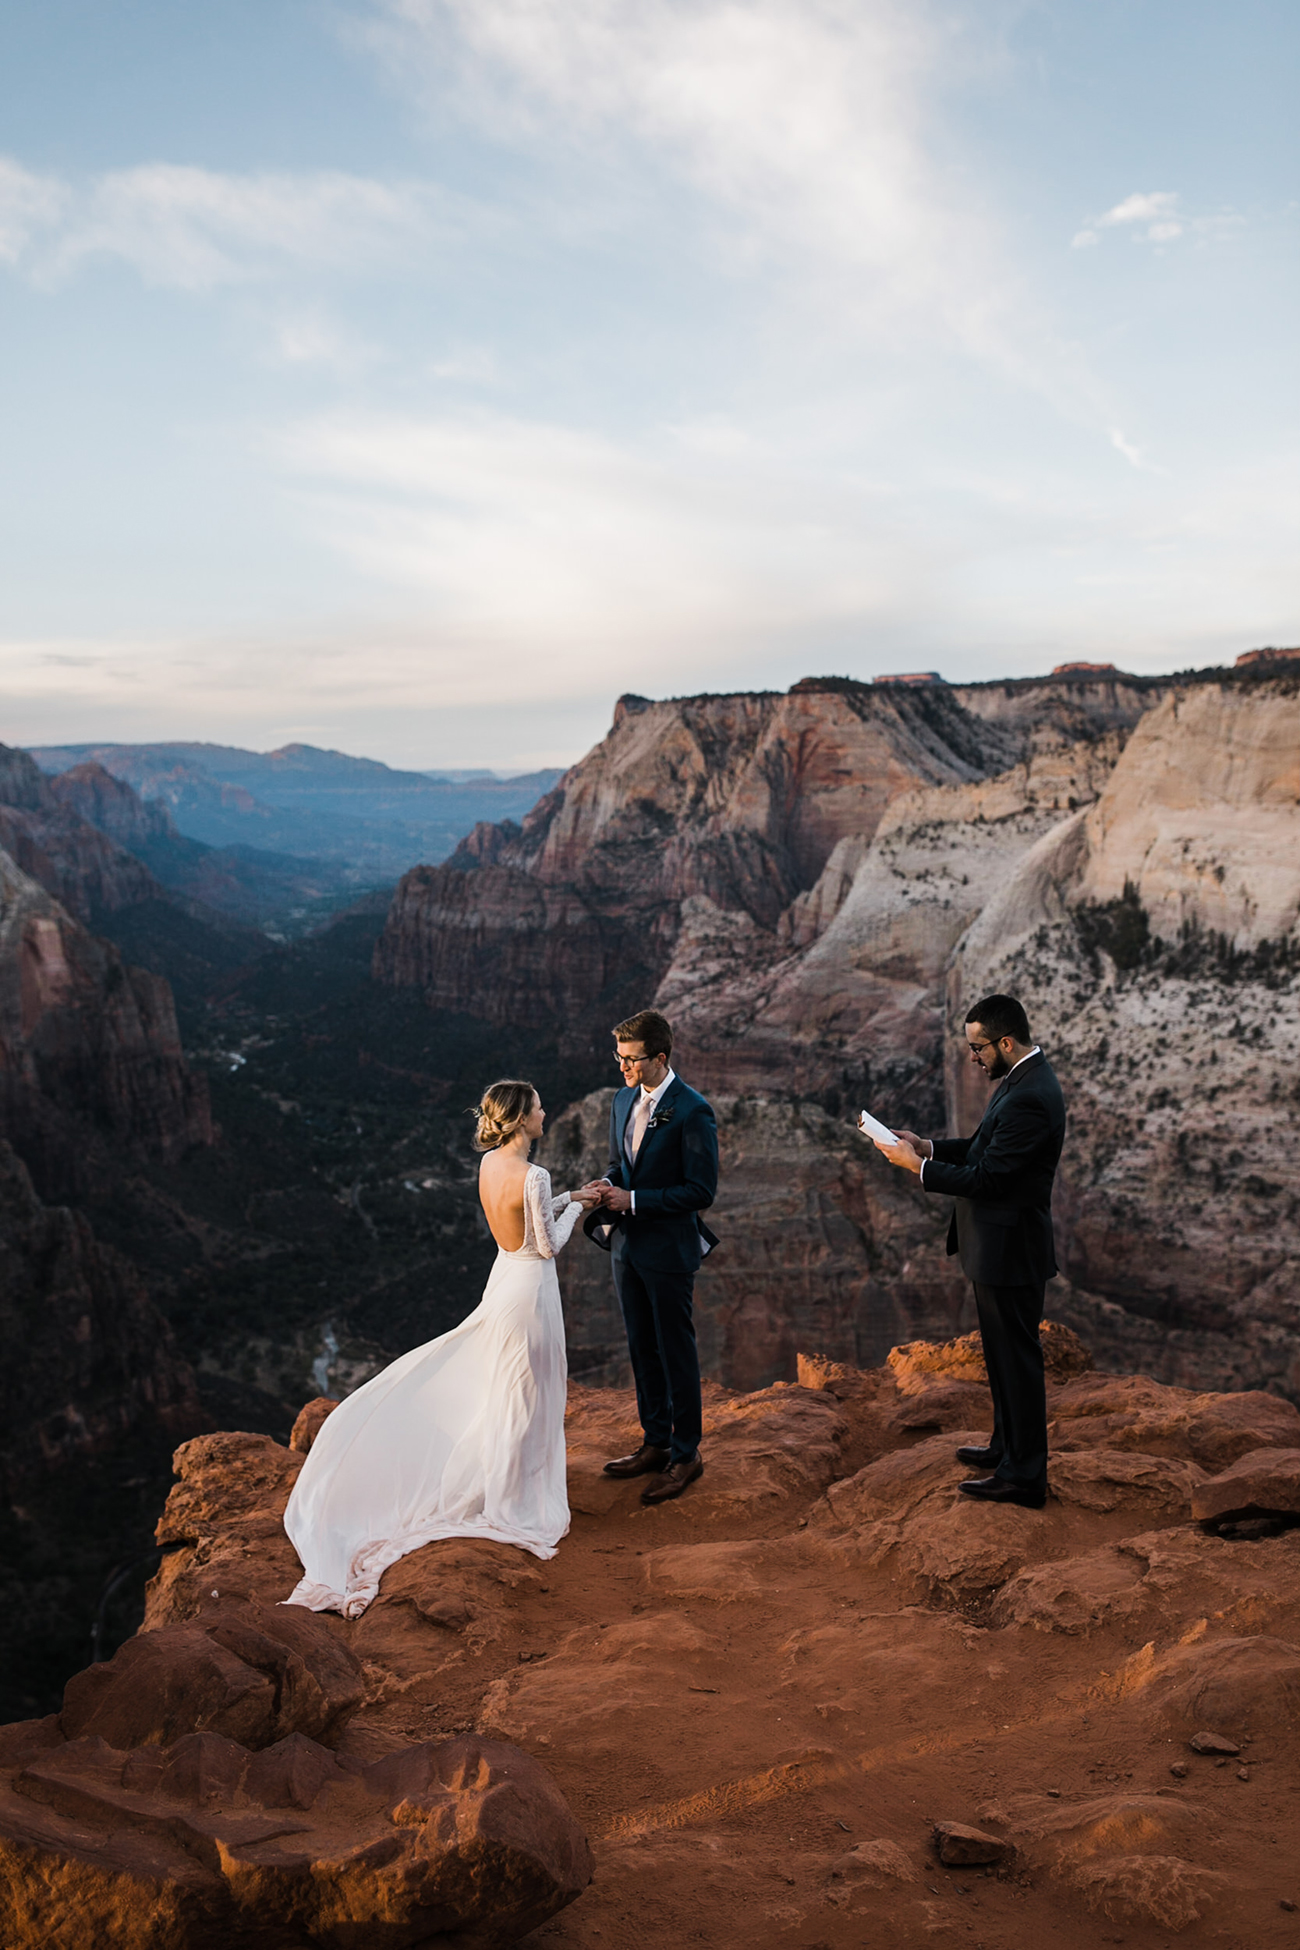 Zion National Park Elopement Wedding Adventure Hiking Hearnes Photography